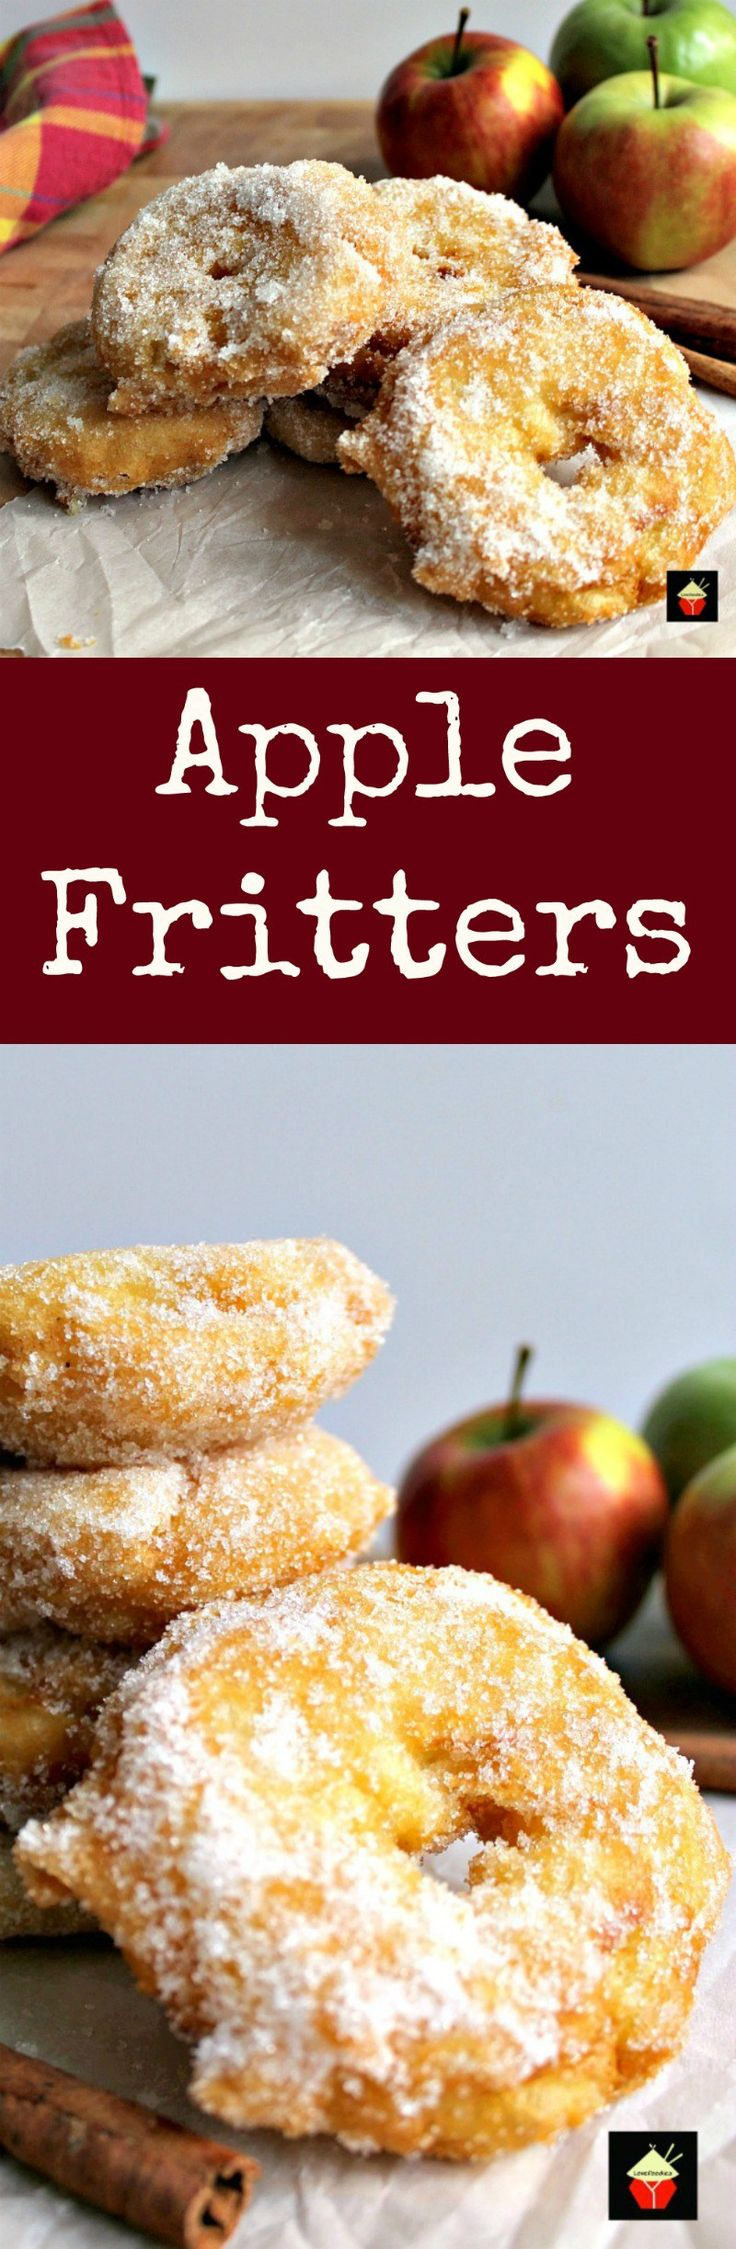 Apple Fritters| Lovefoodies.com